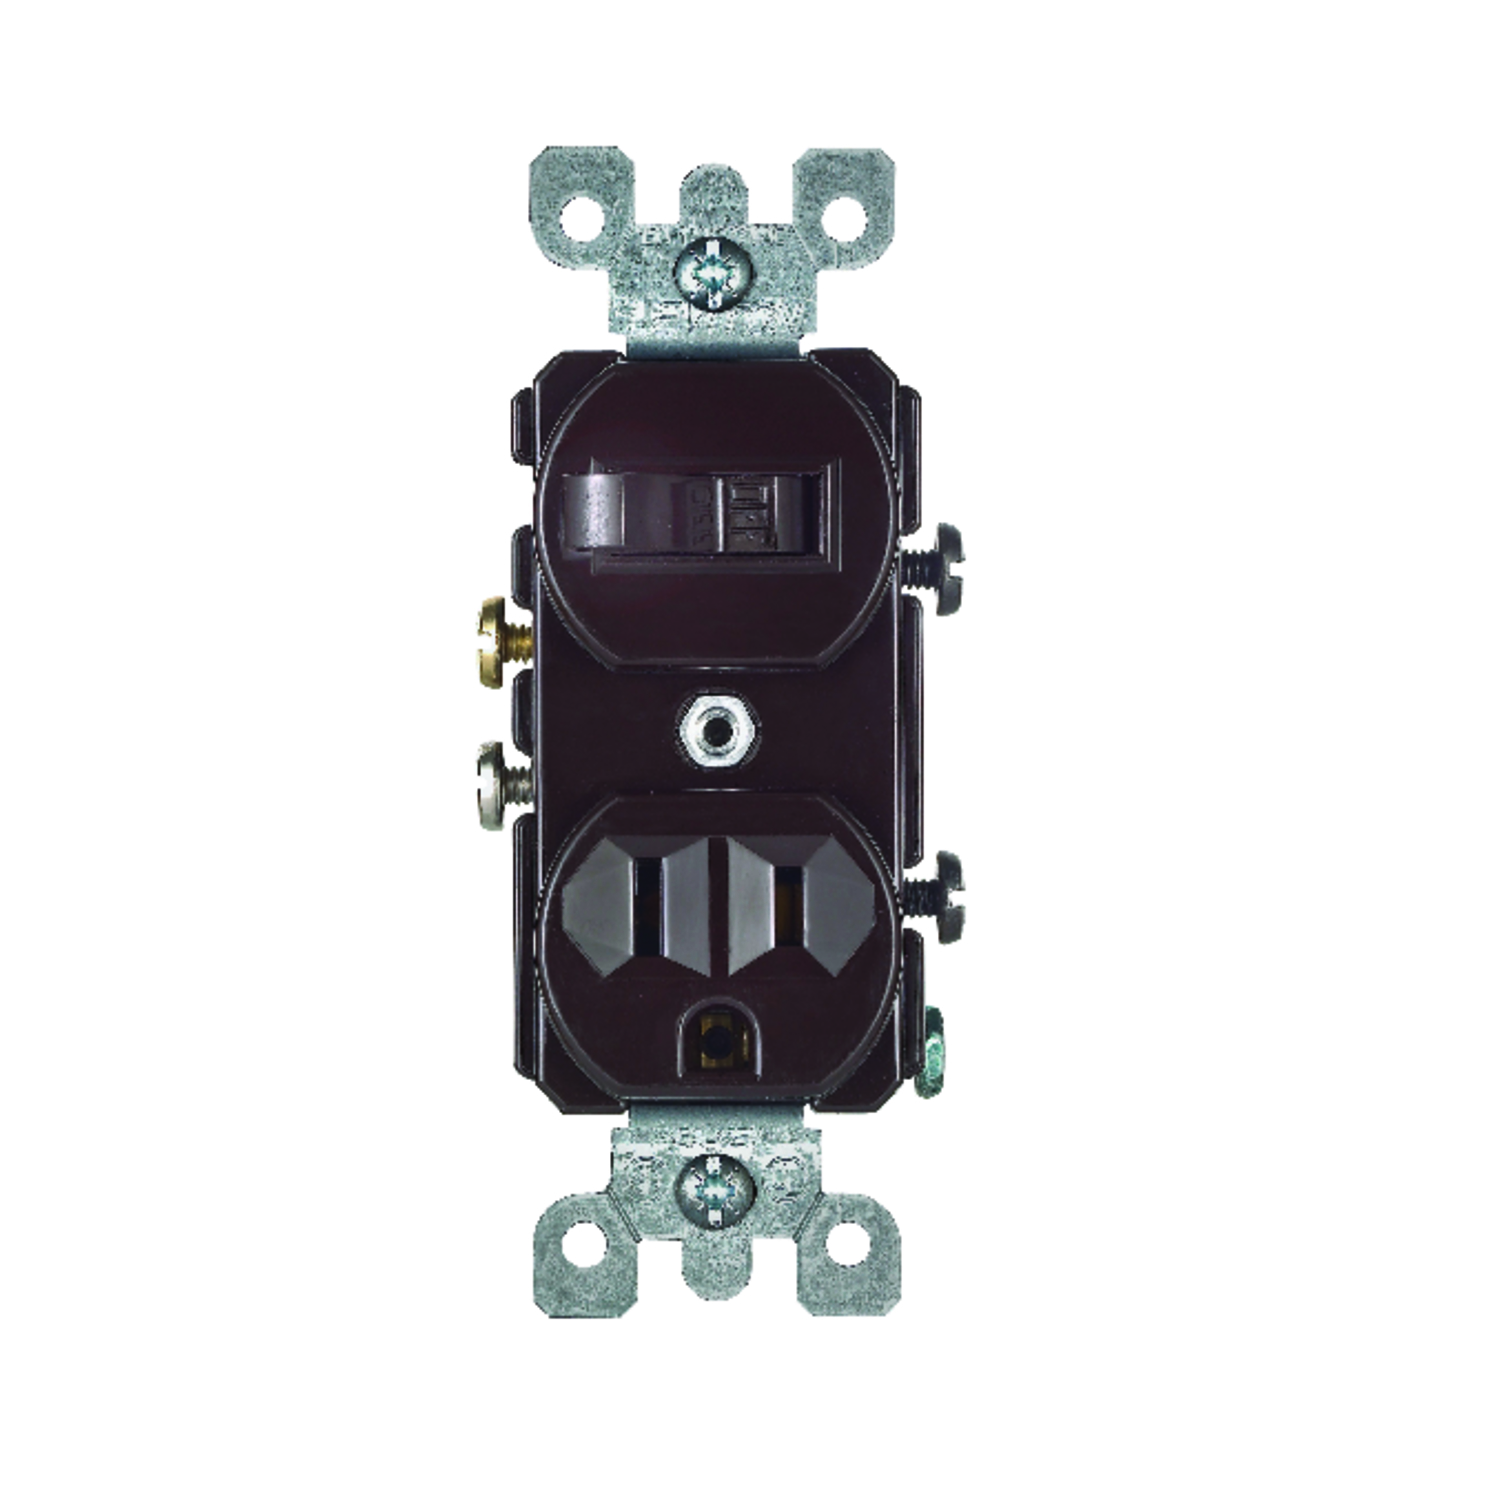 Leviton 15 amps Combination 1 pk Brown Switch - Ace Hardware